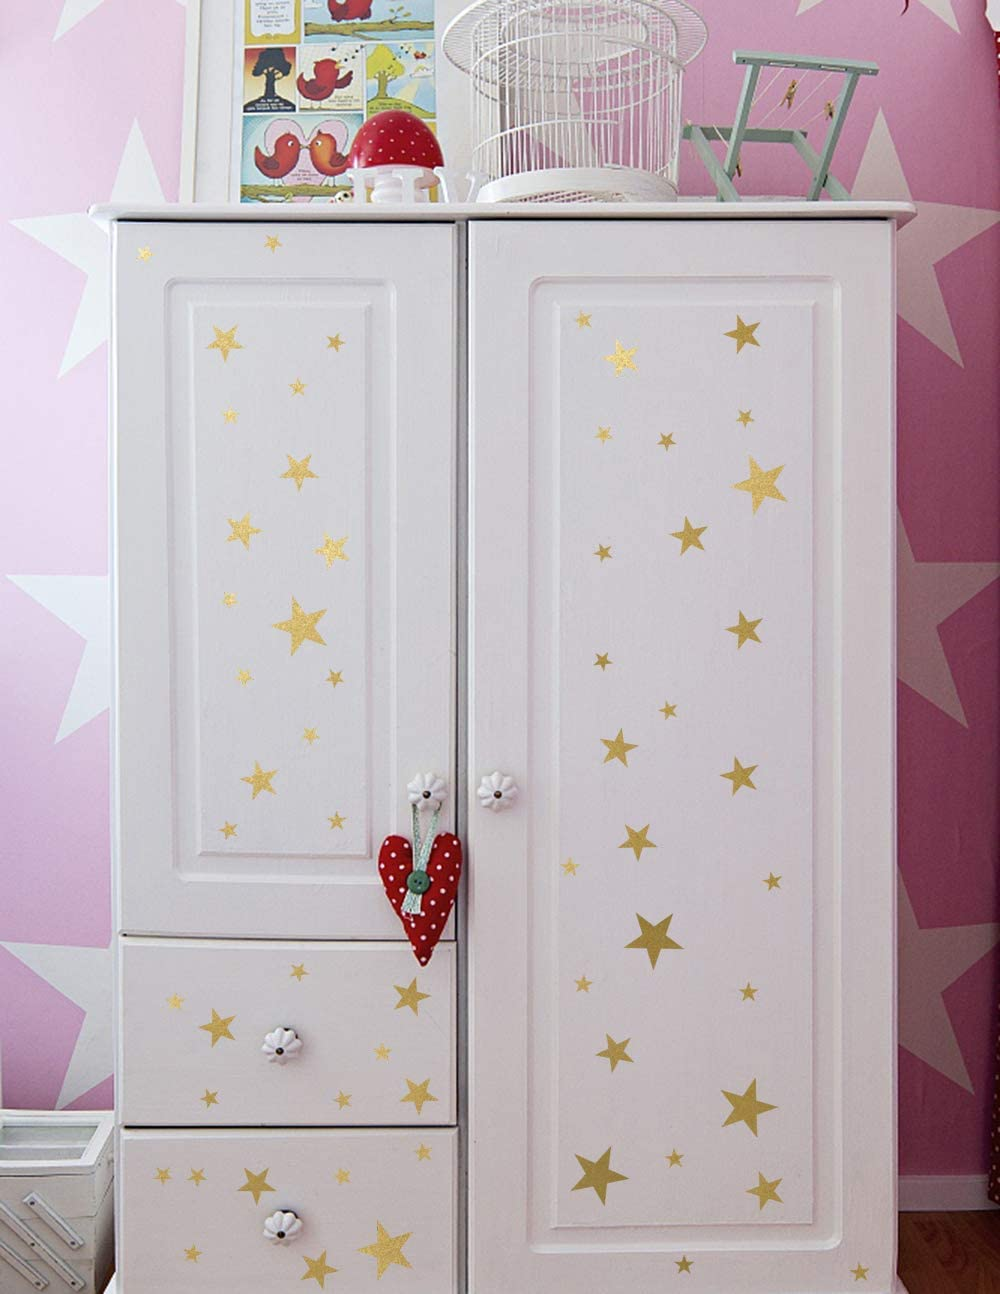 Mozamy Creative Star Wall Decals Gold Star Decals Nursery Decals Removable Peel and Stick Wall Decals 189 Count Vintage Gold